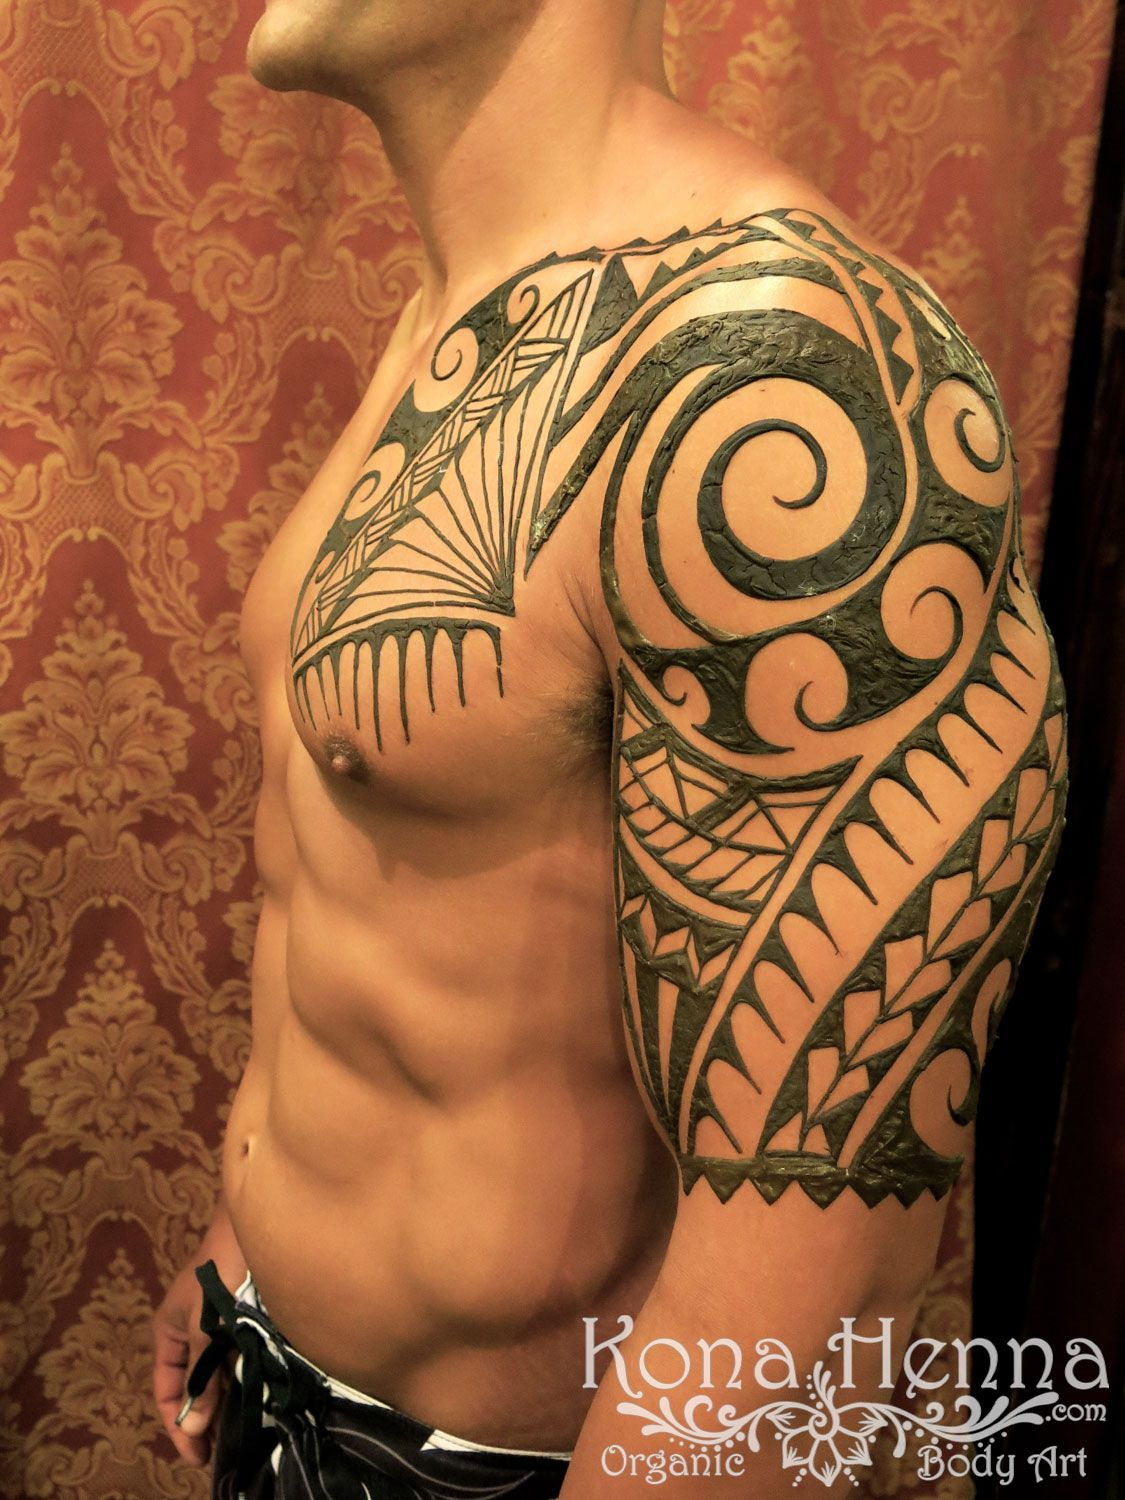 Tattoos Henna For Body: Kona Henna Studio - Chests Gallery